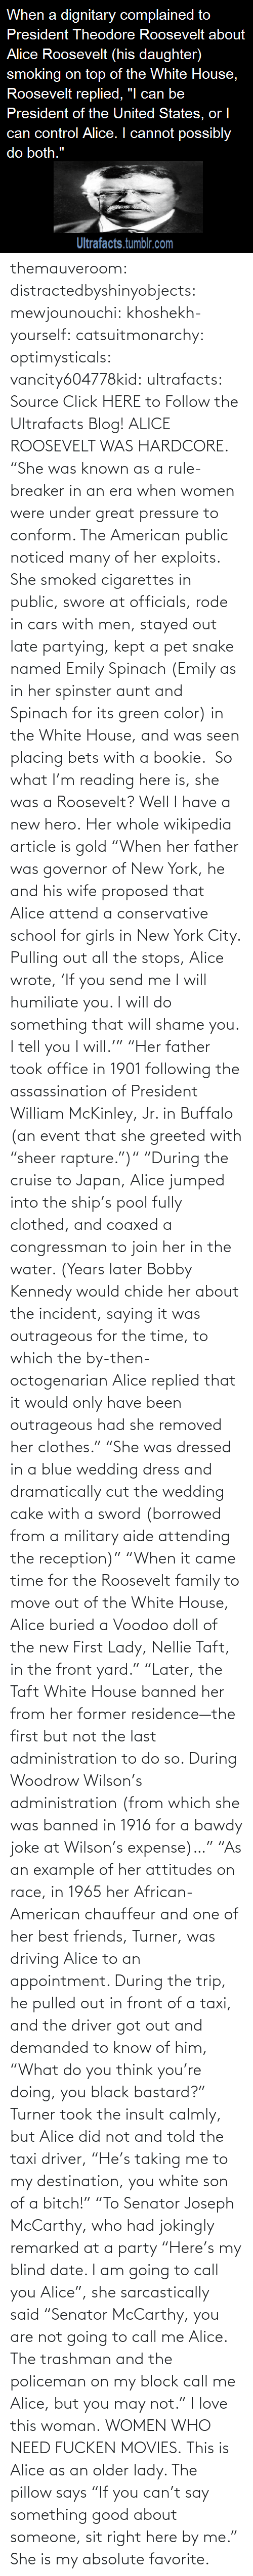 "Click: themauveroom: distractedbyshinyobjects:  mewjounouchi:  khoshekh-yourself:  catsuitmonarchy:  optimysticals:  vancity604778kid:  ultrafacts:     Source Click HERE to Follow the Ultrafacts Blog!     ALICE ROOSEVELT WAS HARDCORE. ""She was known as a rule-breaker in an era when women were under great pressure to conform. The American public noticed many of her exploits. She smoked cigarettes in public, swore at officials, rode in cars with men, stayed out late partying, kept a pet snake named Emily Spinach (Emily as in her spinster aunt and Spinach for its green color) in the White House, and was seen placing bets with a bookie.    So what I'm reading here is, she was a Roosevelt?  Well I have a new hero.  Her whole wikipedia article is gold ""When her father was governor of New York, he and his wife proposed that Alice attend a conservative school for girls in New York City. Pulling out all the stops, Alice wrote, 'If you send me I will humiliate you. I will do something that will shame you. I tell you I will.'"" ""Her father took office in 1901 following the assassination of President William McKinley, Jr. in Buffalo (an event that she greeted with ""sheer rapture."")"" ""During the cruise to Japan, Alice jumped into the ship's pool fully clothed, and coaxed a congressman to join her in the water. (Years later Bobby Kennedy would chide her about the incident, saying it was outrageous for the time, to which the by-then-octogenarian Alice replied that it would only have been outrageous had she removed her clothes."" ""She was dressed in a blue wedding dress and dramatically cut the wedding cake with a sword (borrowed from a military aide attending the reception)"" ""When it came time for the Roosevelt family to move out of the White House, Alice buried a Voodoo doll of the new First Lady, Nellie Taft, in the front yard."" ""Later, the Taft White House banned her from her former residence—the first but not the last administration to do so. During Woodrow Wilson's administration (from which she was banned in 1916 for a bawdy joke at Wilson's expense)…"" ""As an example of her attitudes on race, in 1965 her African-American chauffeur and one of her best friends, Turner, was driving Alice to an appointment. During the trip, he pulled out in front of a taxi, and the driver got out and demanded to know of him, ""What do you think you're doing, you black bastard?"" Turner took the insult calmly, but Alice did not and told the taxi driver, ""He's taking me to my destination, you white son of a bitch!"" ""To Senator Joseph McCarthy, who had jokingly remarked at a party ""Here's my blind date. I am going to call you Alice"", she sarcastically said ""Senator McCarthy, you are not going to call me Alice. The trashman and the policeman on my block call me Alice, but you may not.""  I love this woman.  WOMEN WHO NEED FUCKEN MOVIES.   This is Alice as an older lady. The pillow says ""If you can't say something good about someone, sit right here by me.""  She is my absolute favorite."